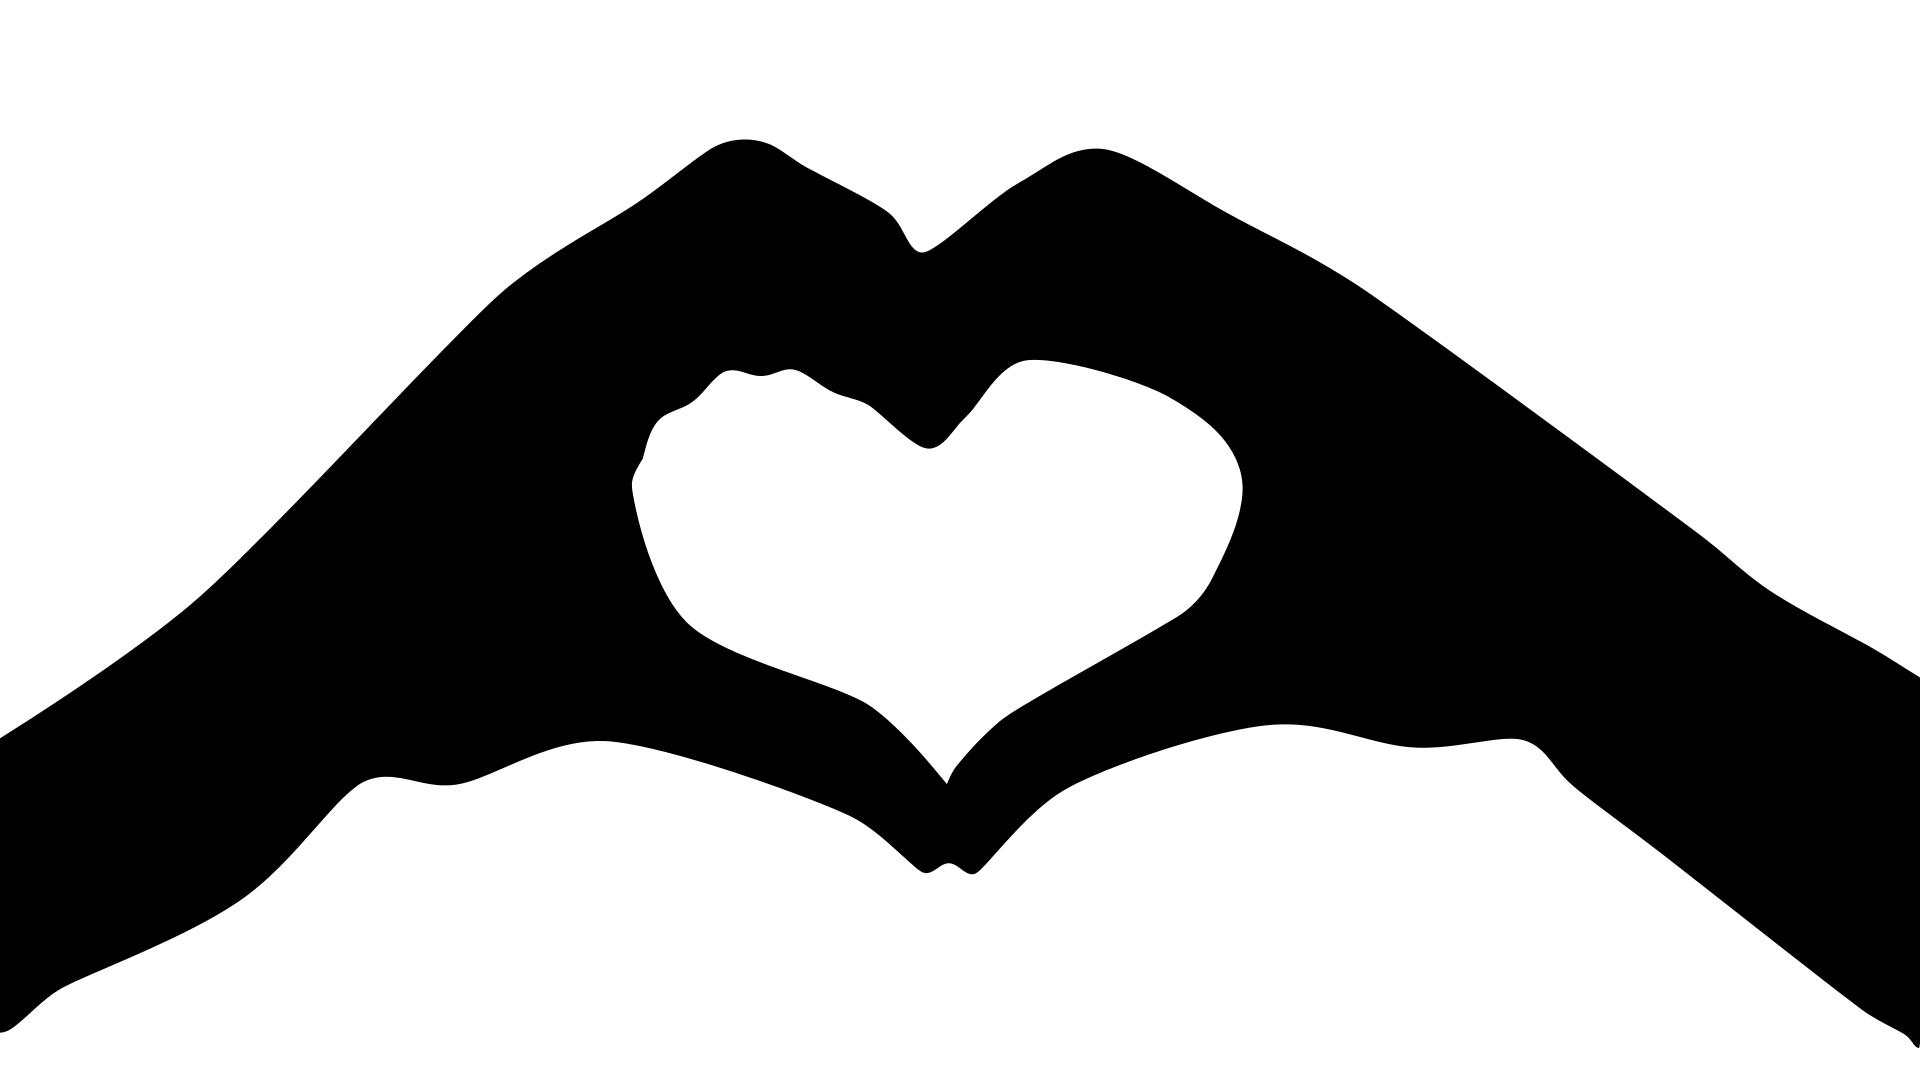 Heart Hands Silhouette at GetDrawings.com.